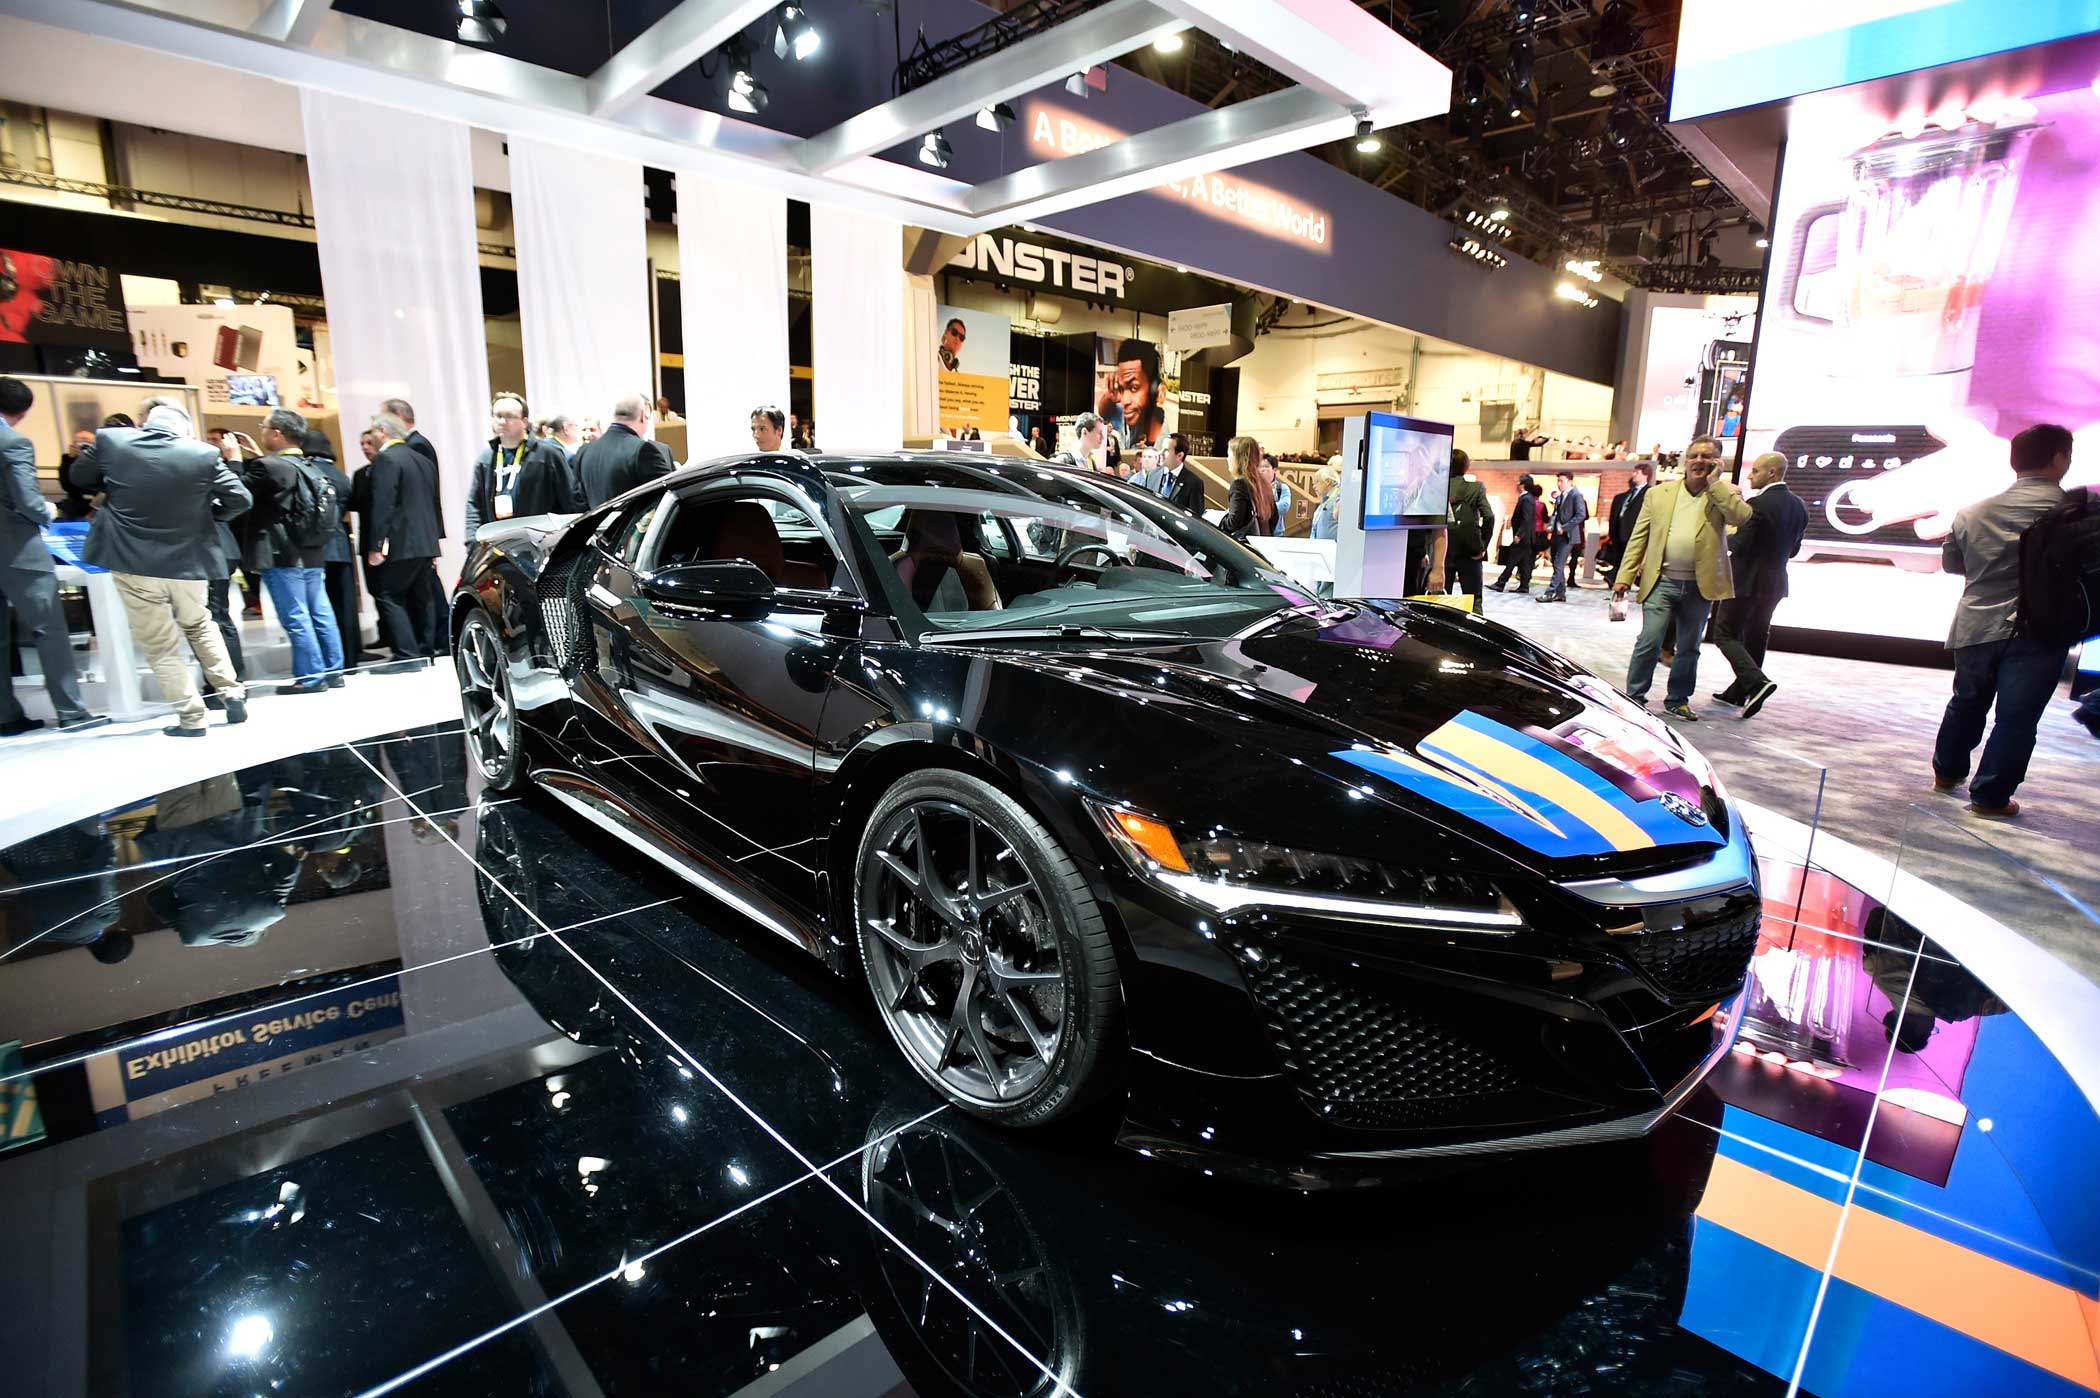 The 2017 Acura NSX Hybrid is displayed at the Panasonic booth.